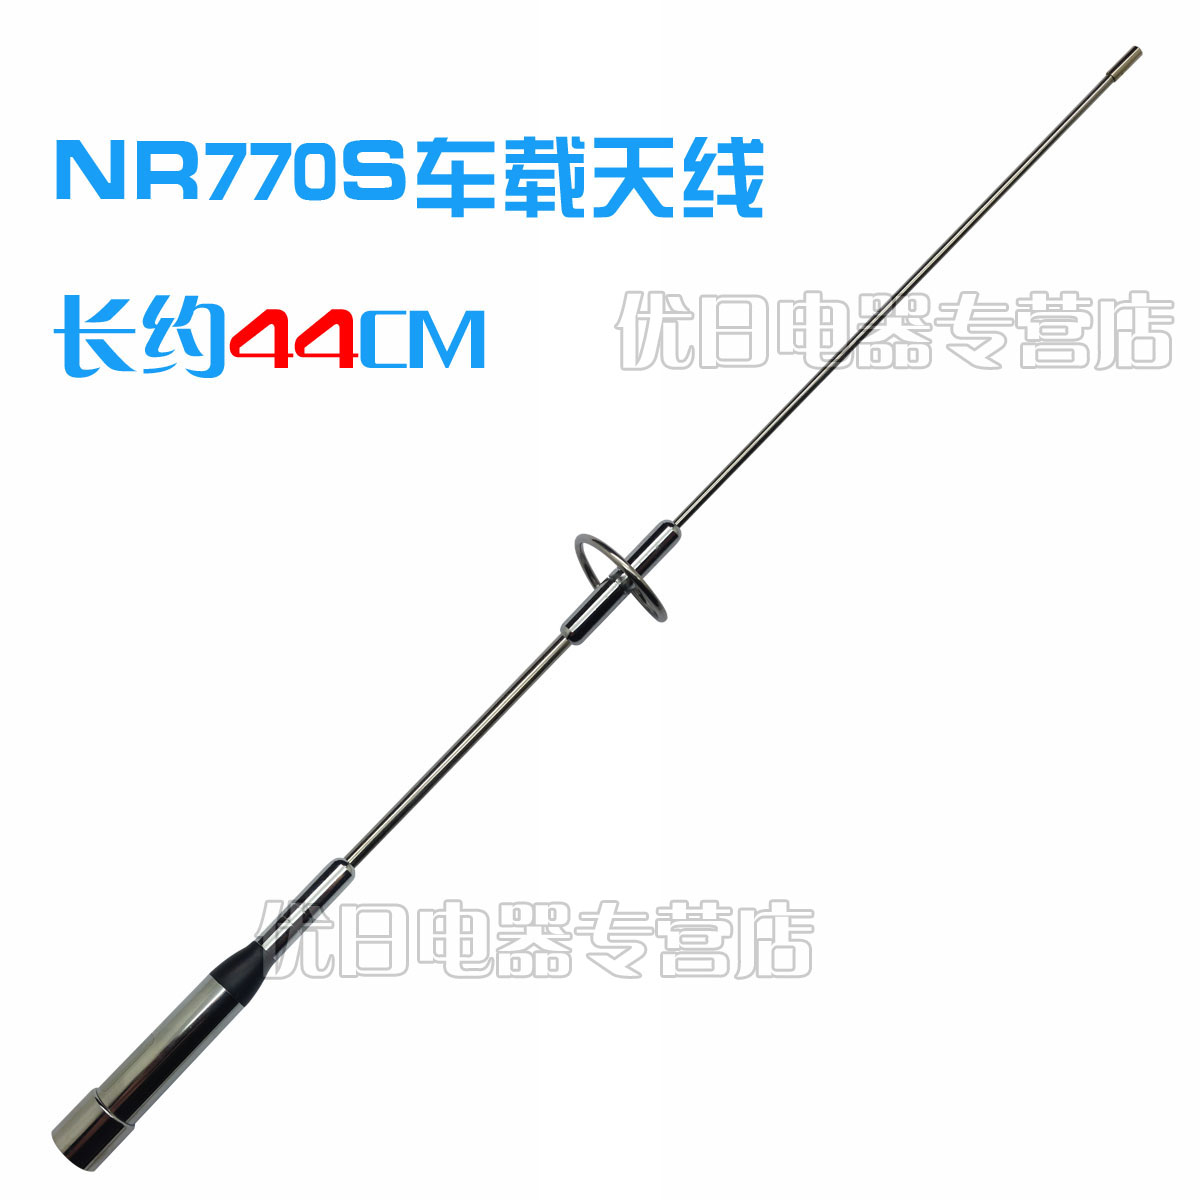 Excellent day ♂ ♂ car antenna car antenna nr-770s car seedling ♂ ♂ ♂ high gain dual segment car pole